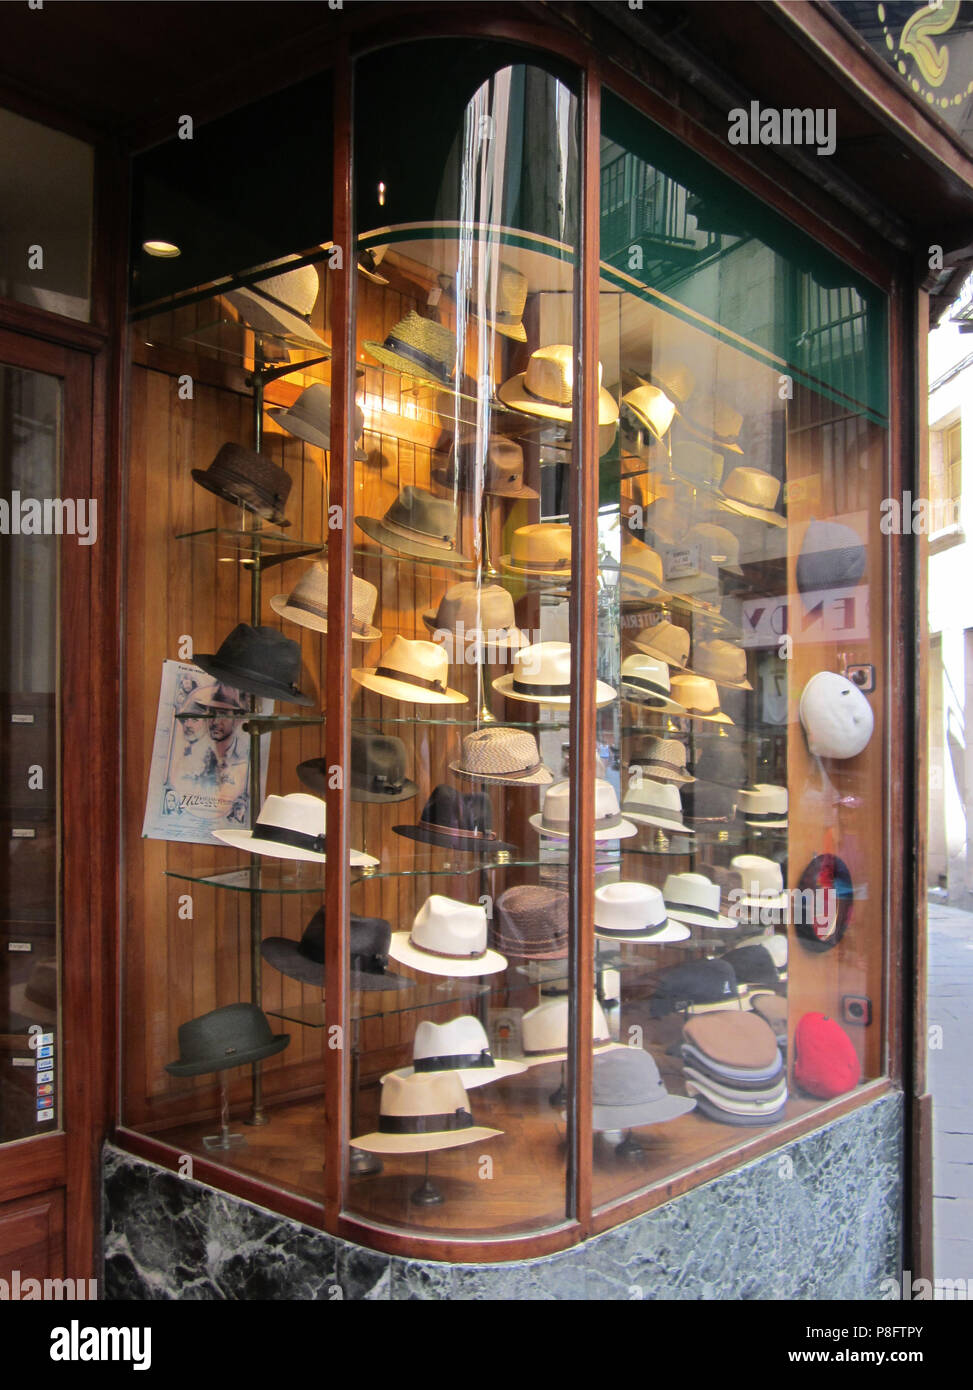 Display Hats Hat Shop Barcelona Stock Photos   Display Hats Hat Shop ... 7d6d02e5eb02